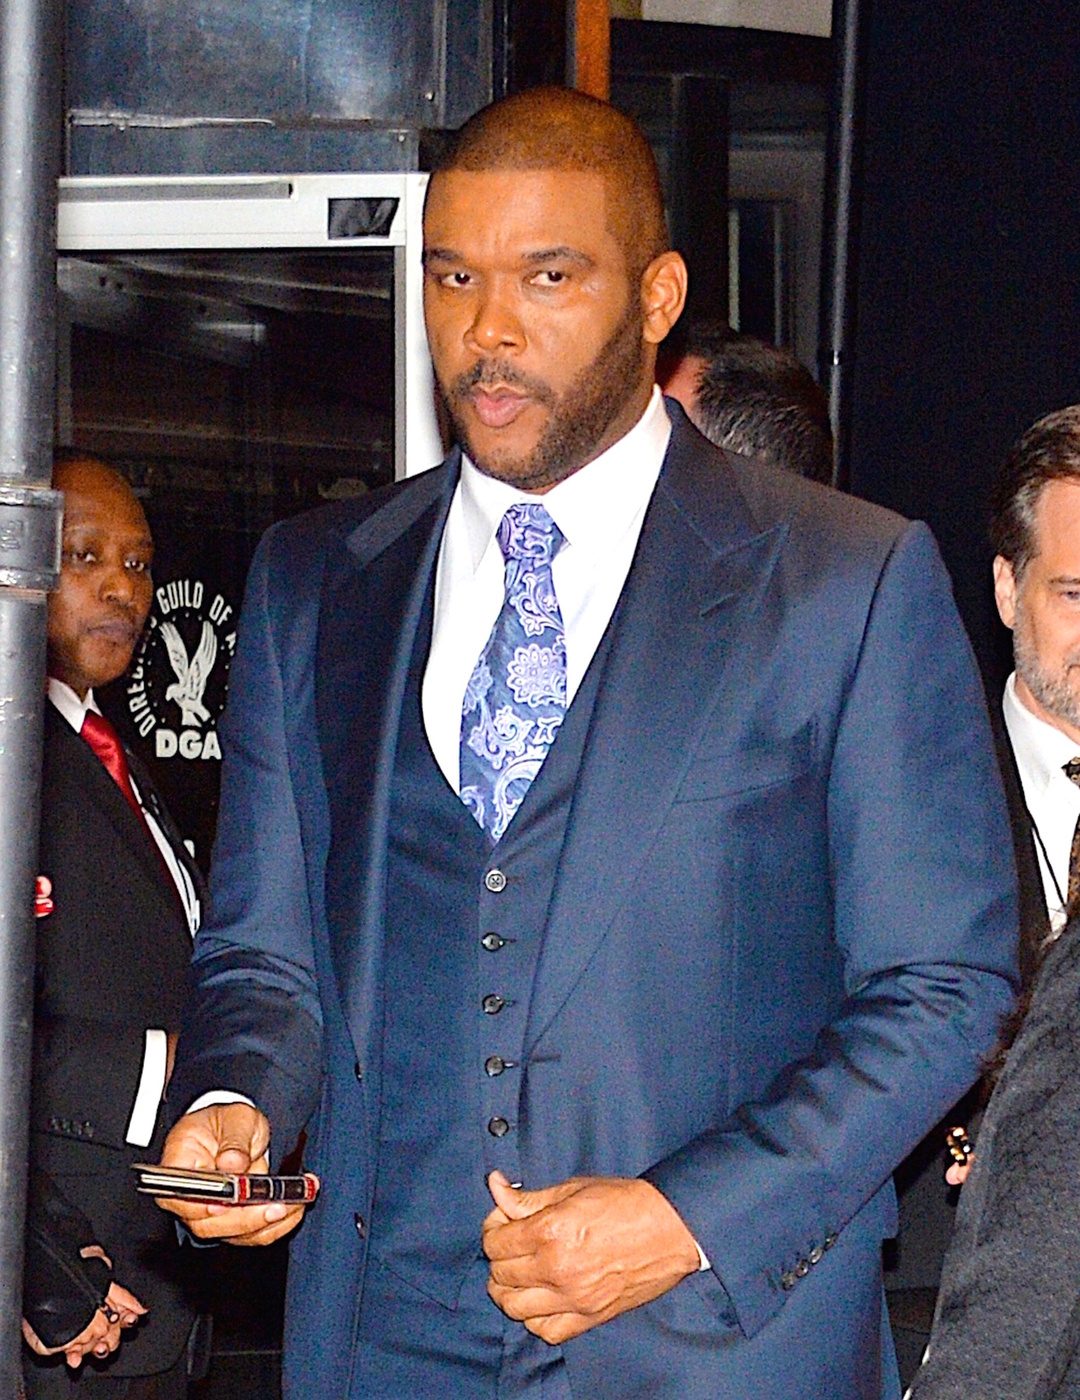 143785, Tyler Perry at the DGA Honors 2015 Gala event in NYC. New York, New York - Thursday October 15, 2015. Photograph: © PacificCoastNews. Los Angeles Office: +1 310.822.0419 sales@pacificcoastnews.com FEE MUST BE AGREED PRIOR TO USAGE